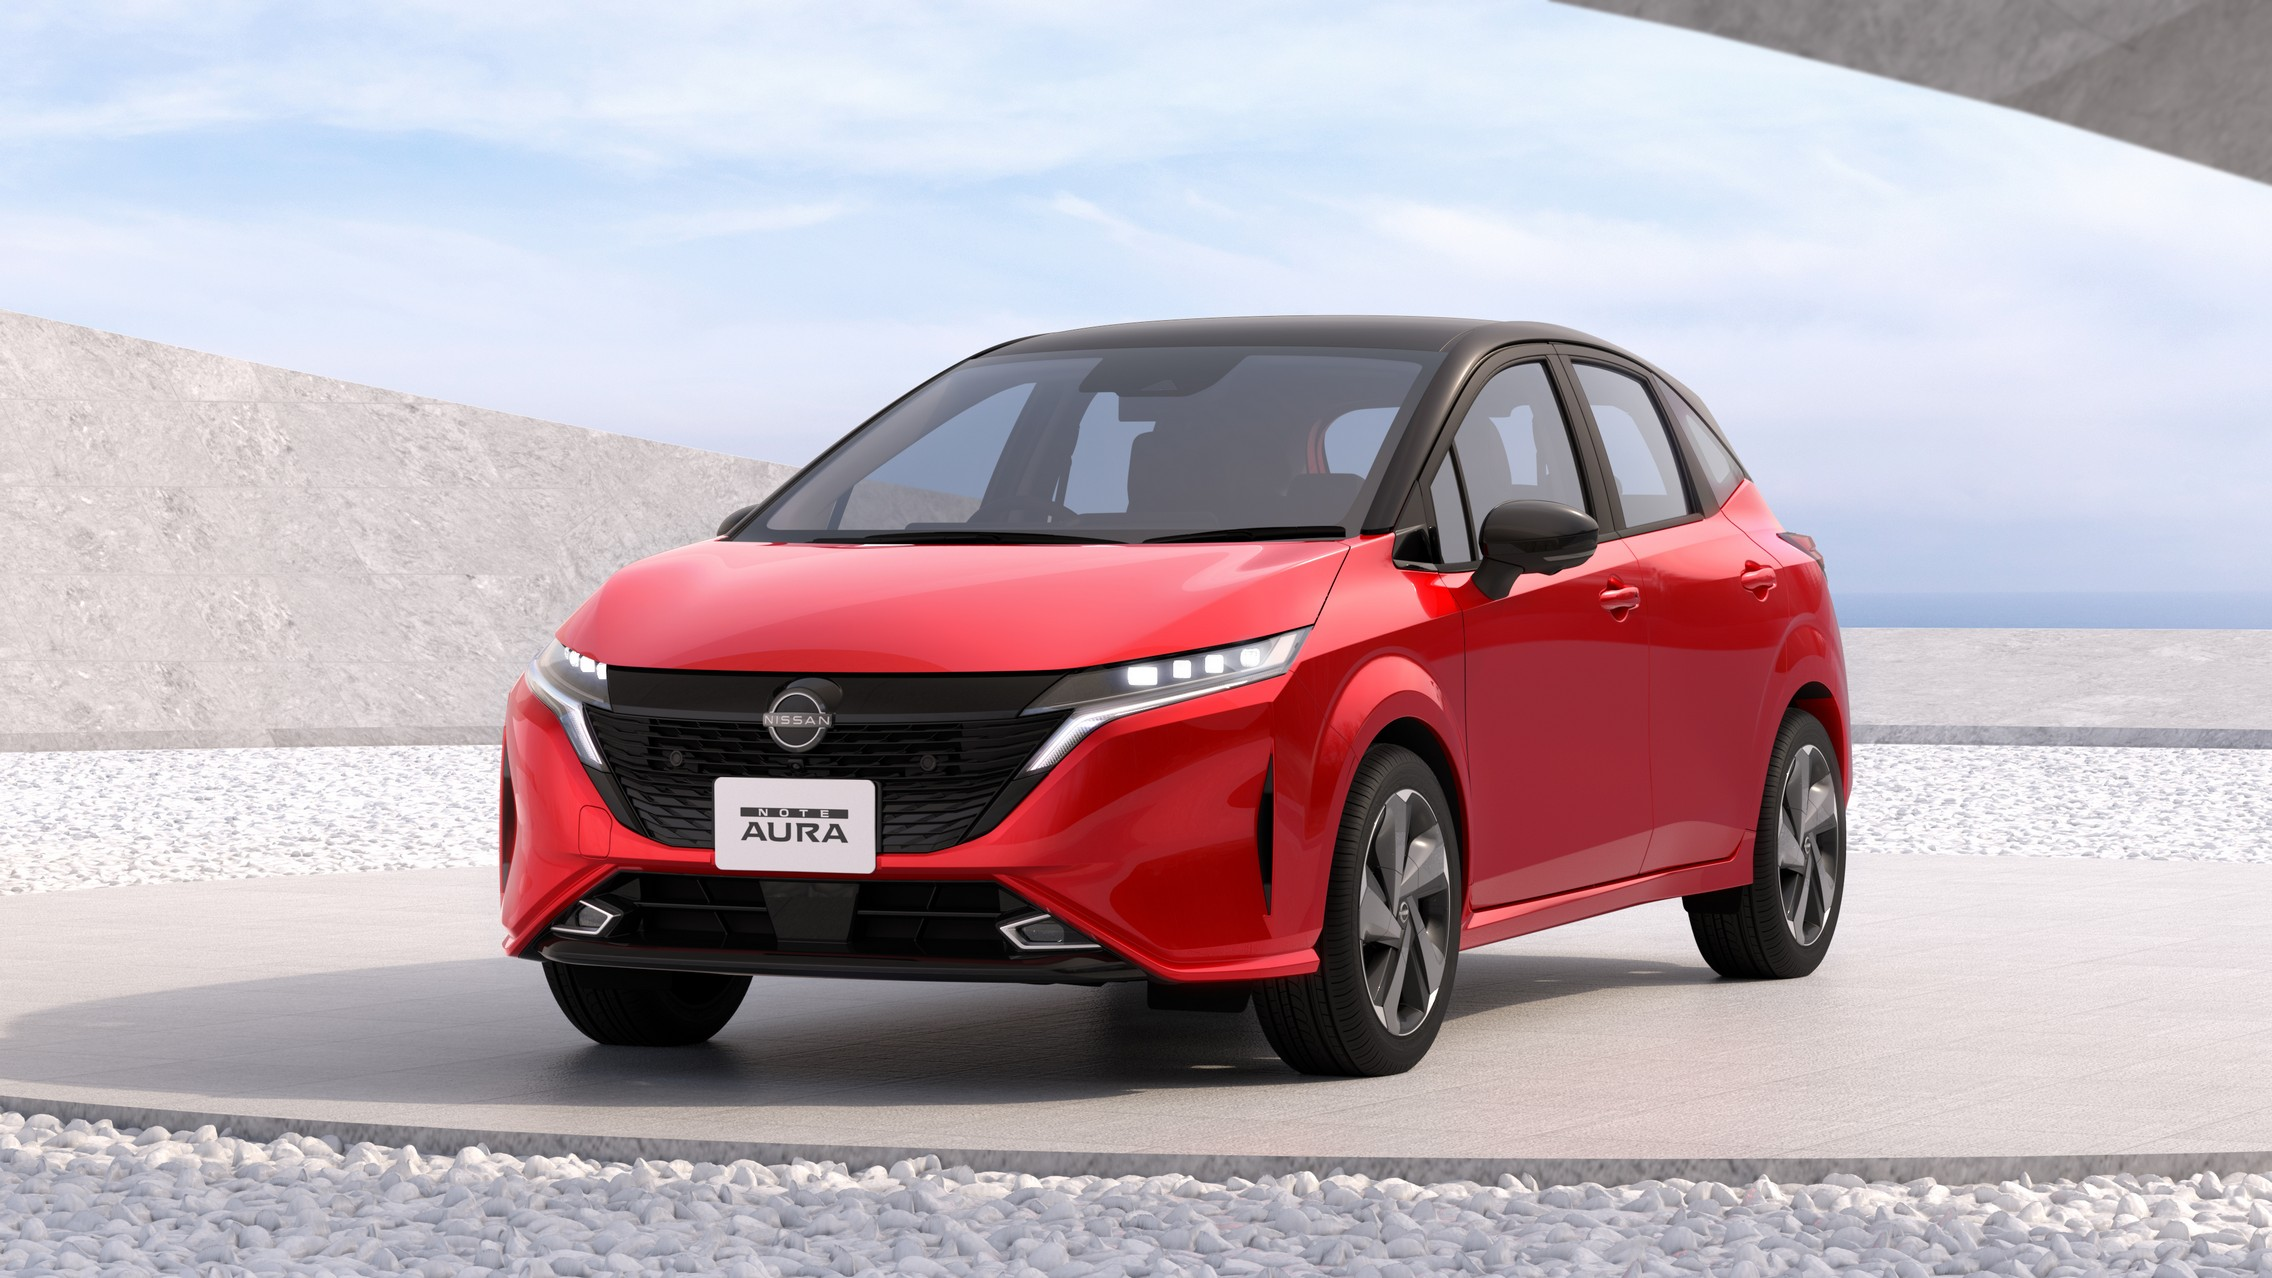 Nissan unveiled the next-gen Note hatchback half a year ago, and has now announced a special edition of it named Aura, which will be distanced from the main model.